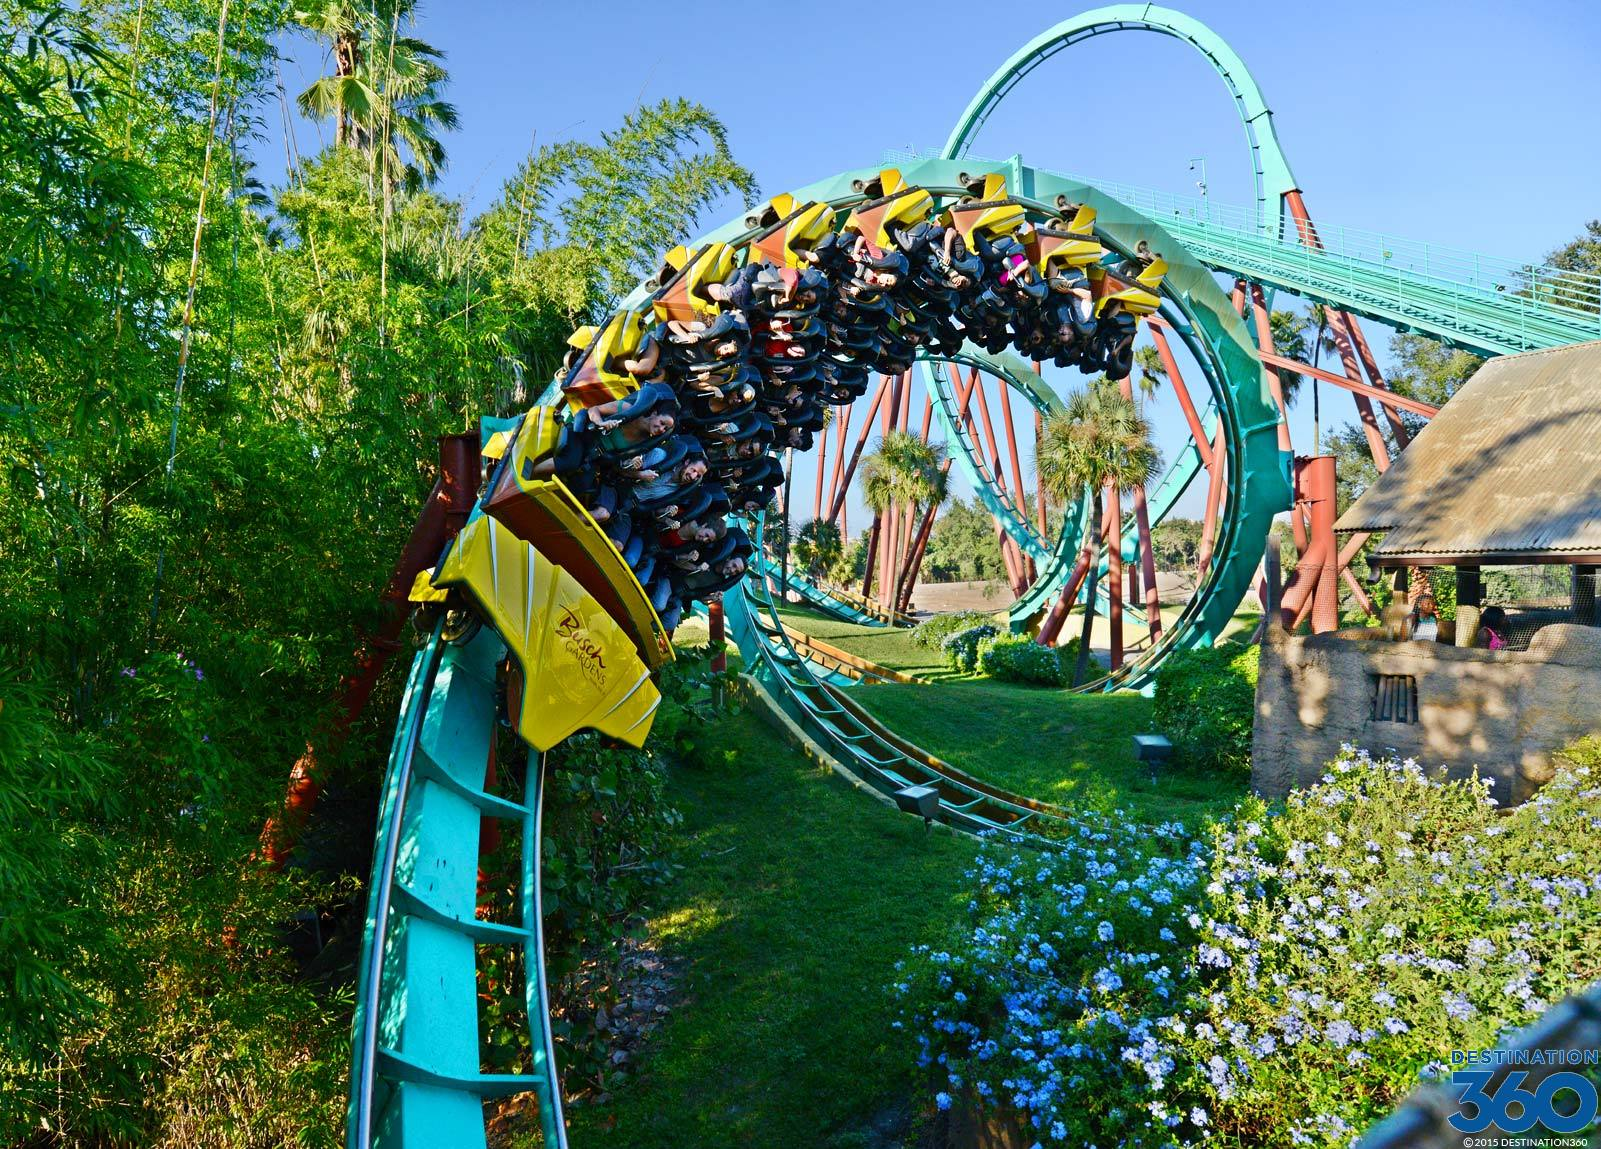 Busch gardens tours busch gardens safari tour for Best day go busch gardens tampa